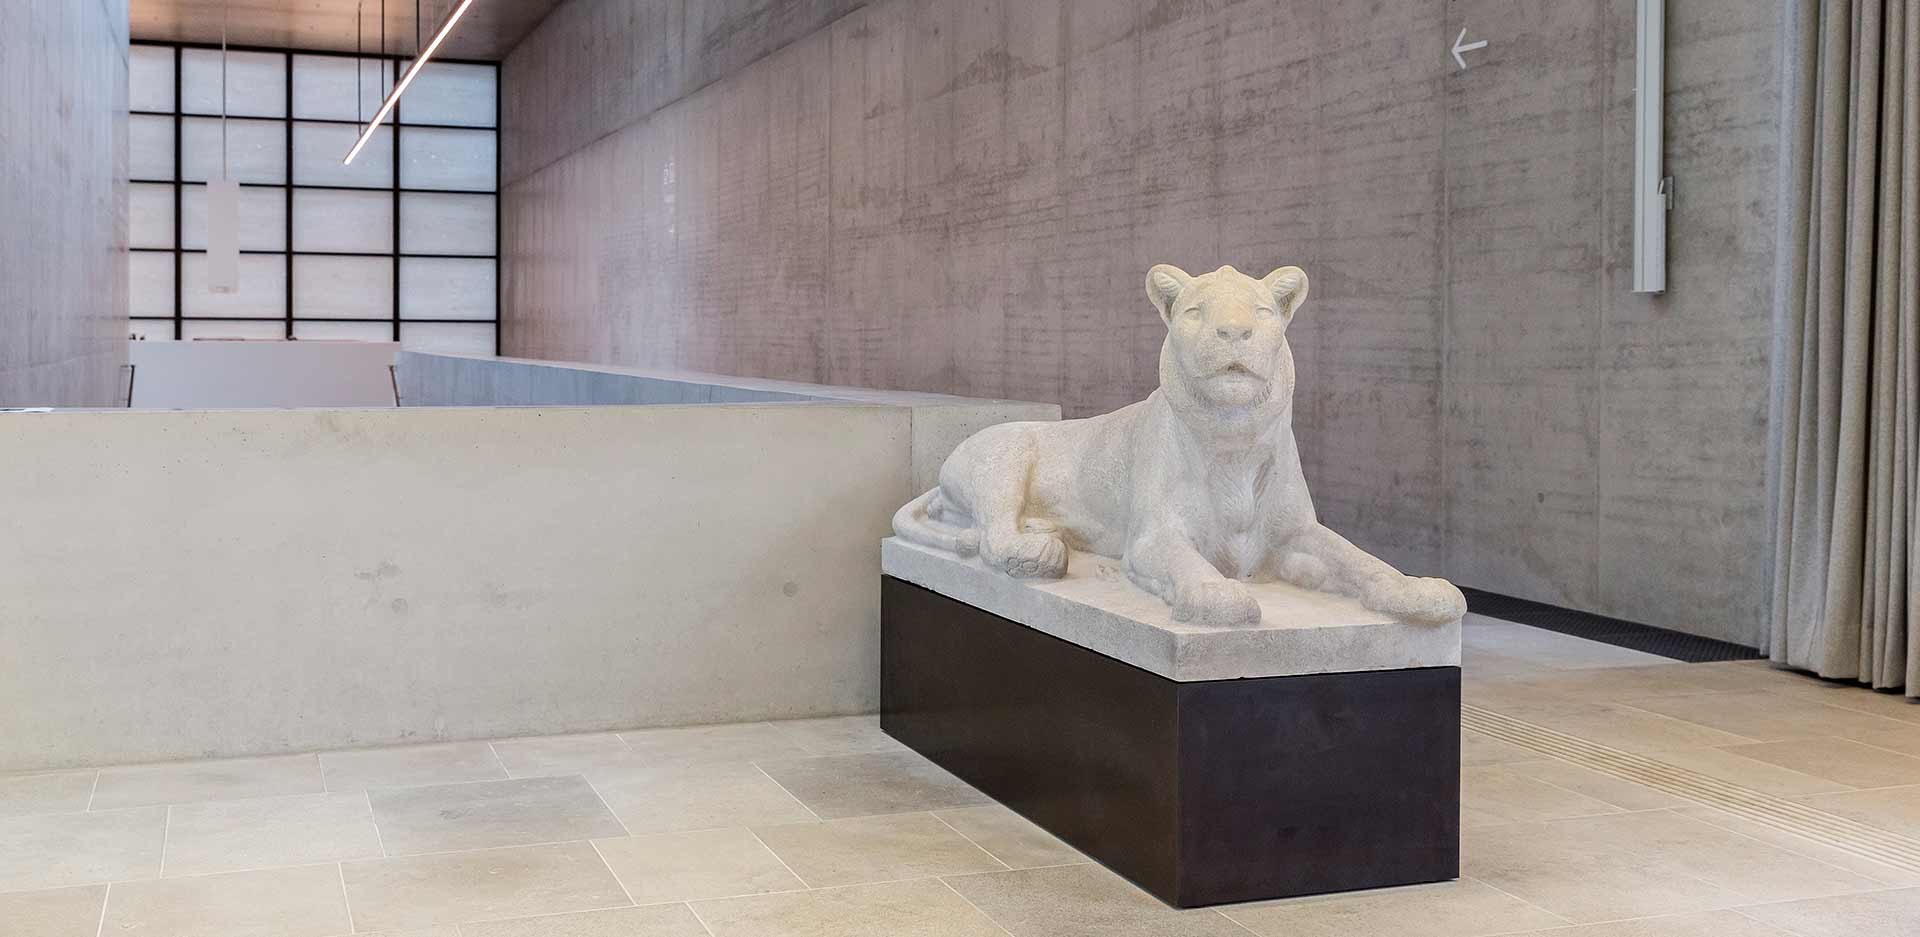 August Gaul's 'Reclining Lion' in the foyer of the James-Simon-Galerie